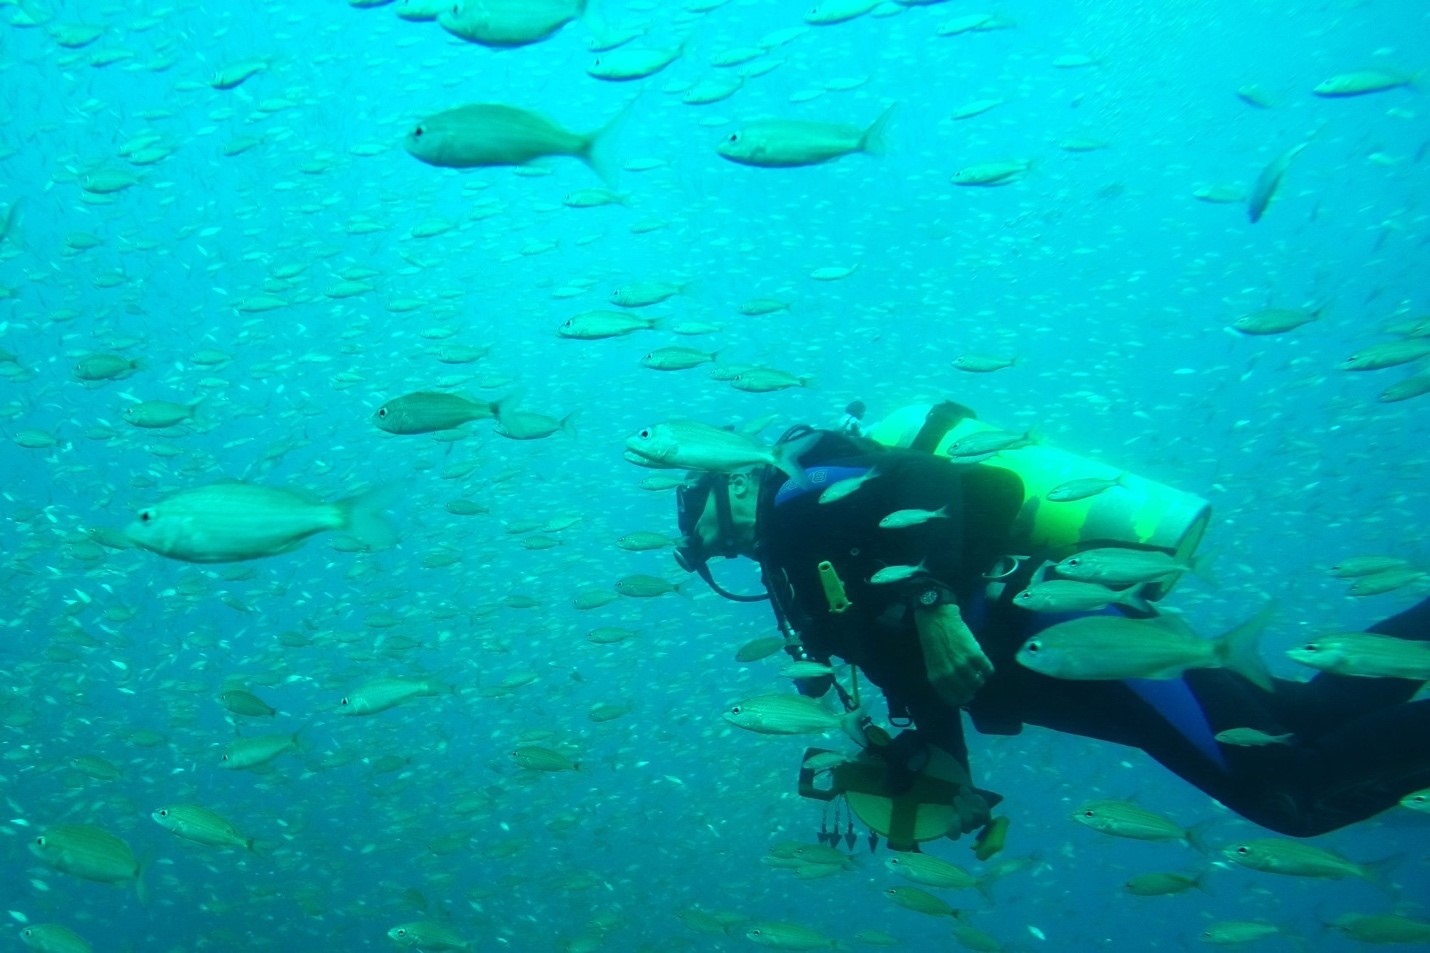 scuba diver swims through school of fish underwater